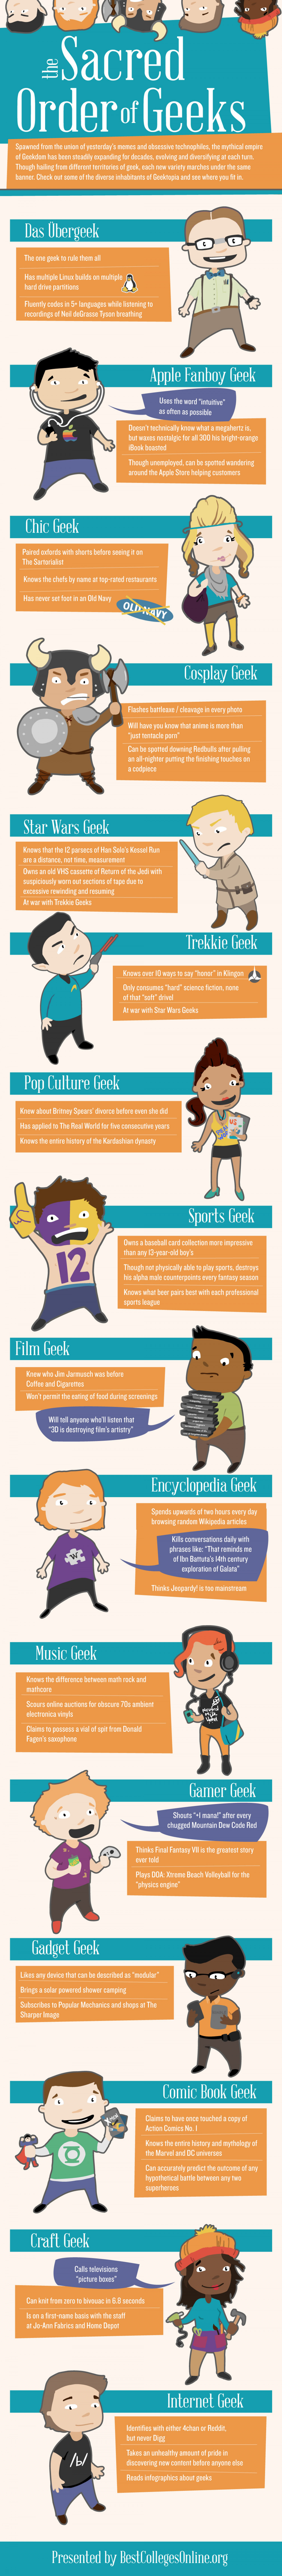 What Kind of Geek are You? Infographic